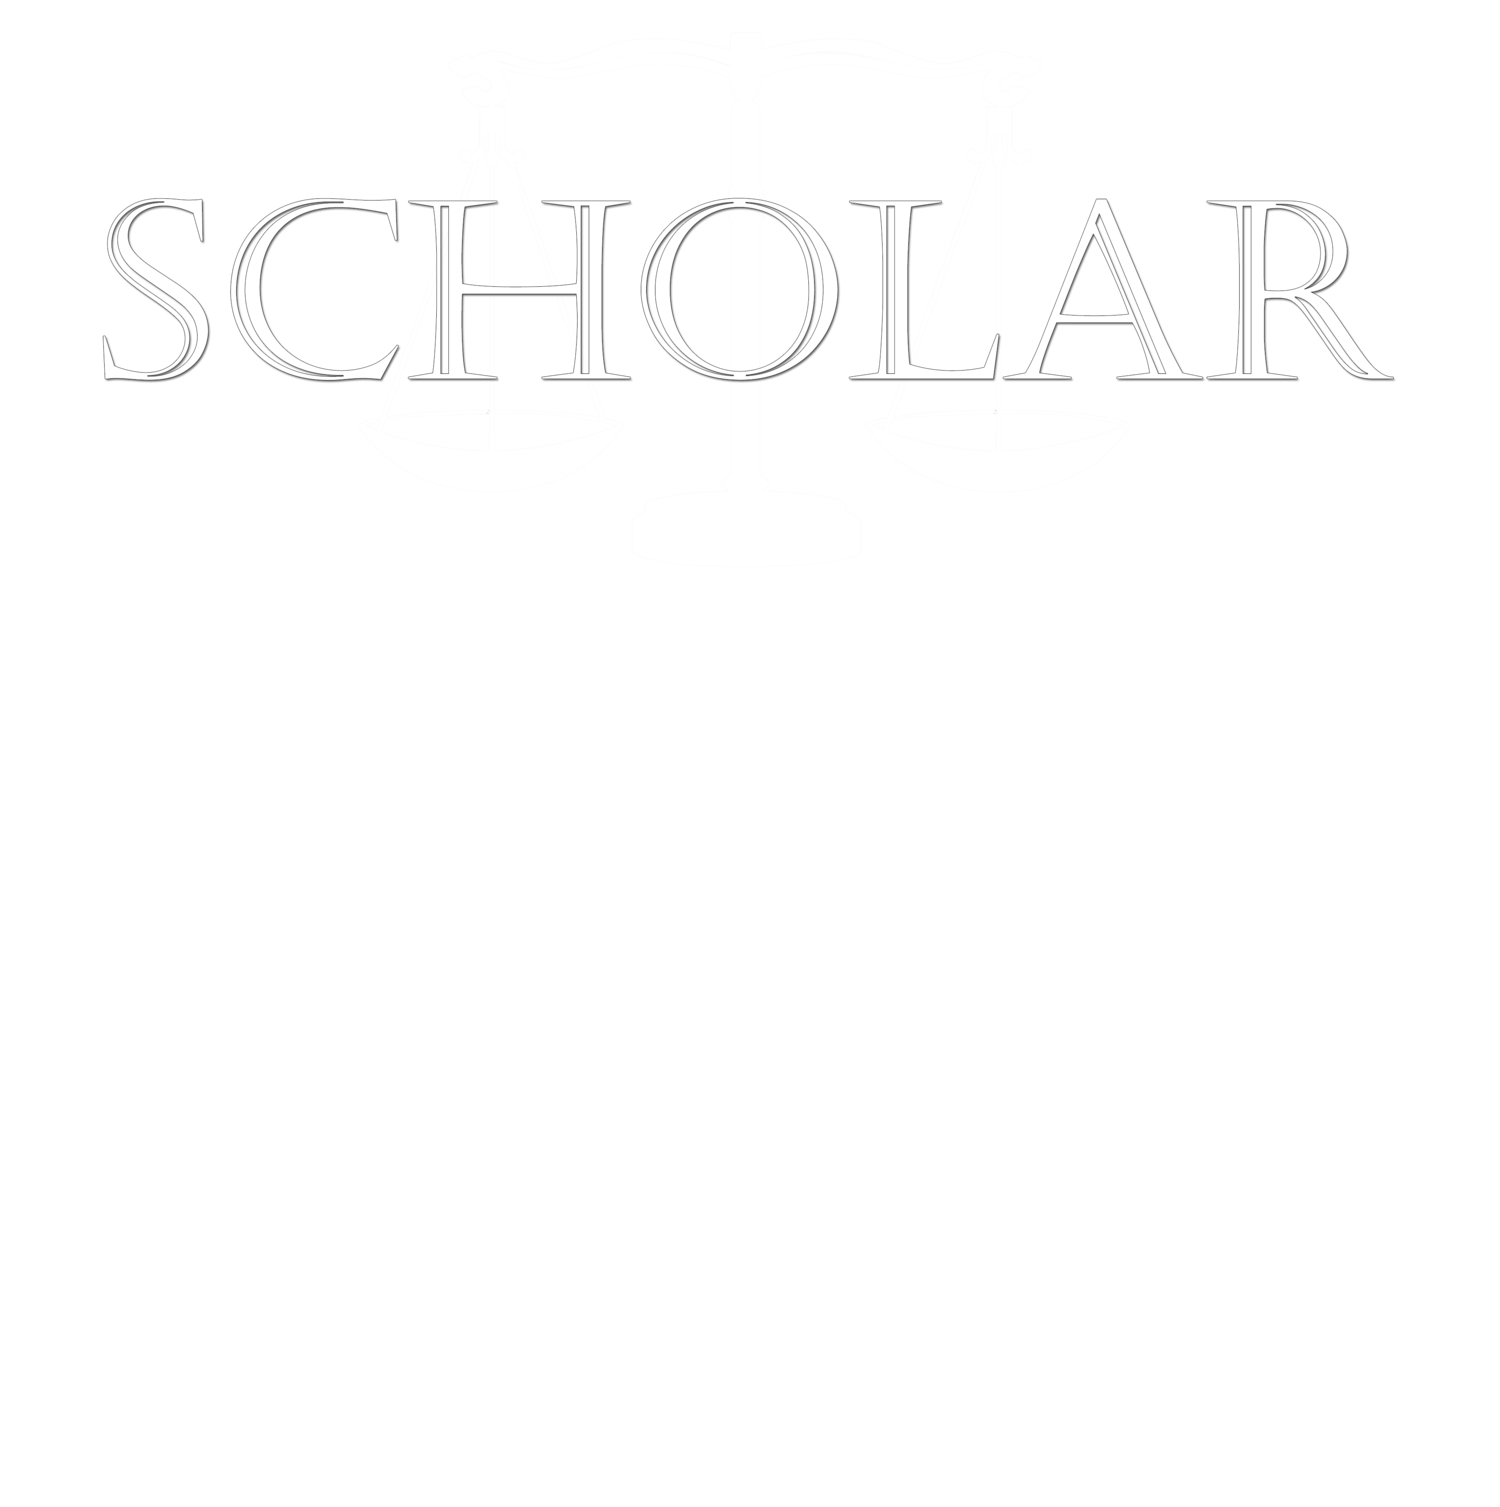 Scholar: St. Mary's Law Review on Race and Social Justice